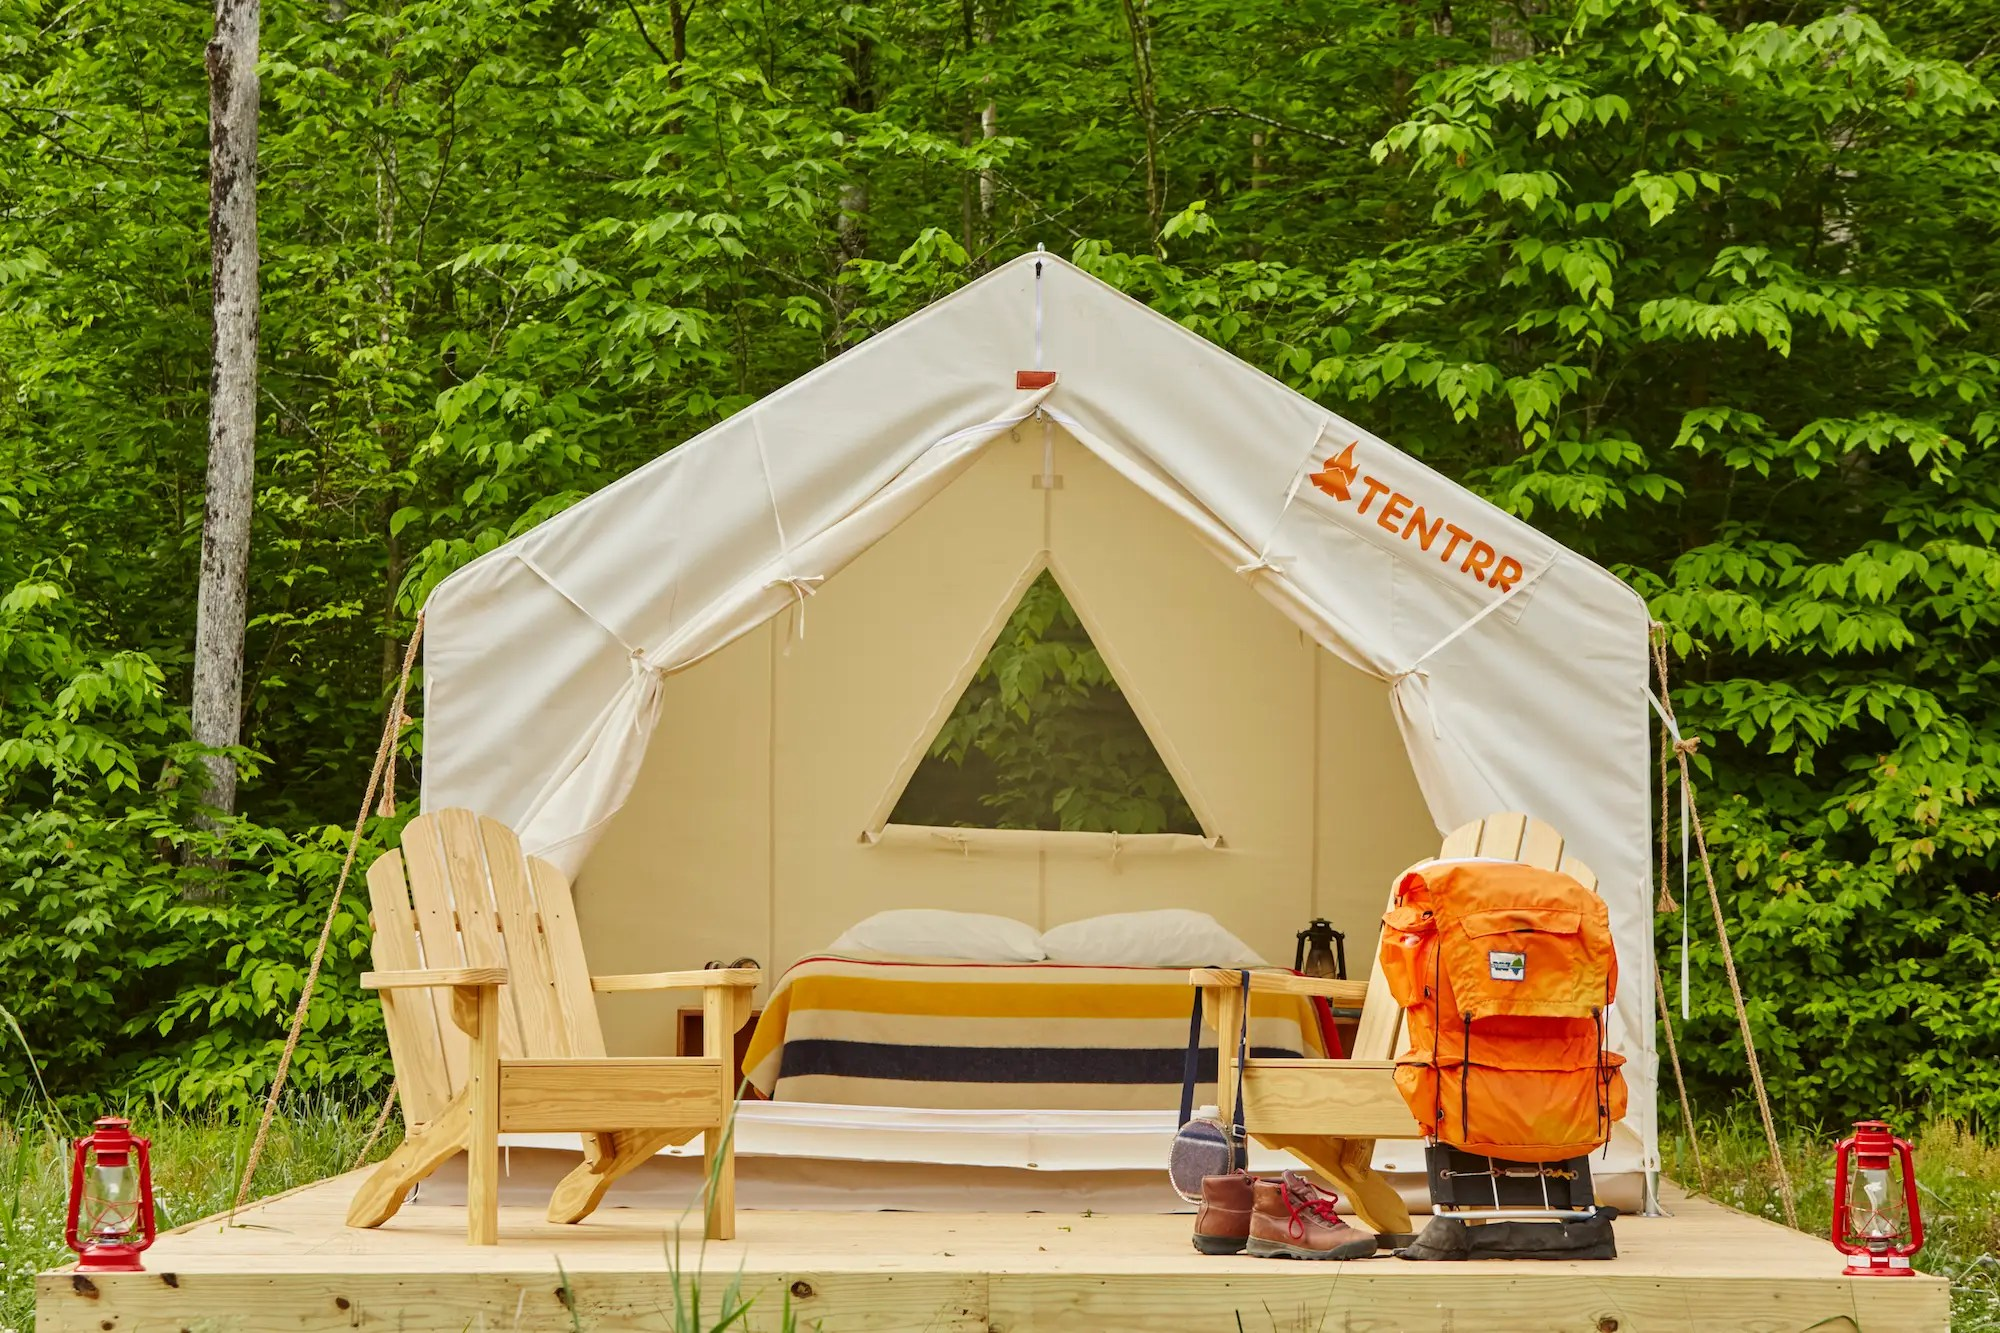 Each rental comes fully equipped with a canvas tent on a large wooded platform, a queen-sized air mattress, two Adirondack chairs, a fire pit, cookware, and a portable toilet.